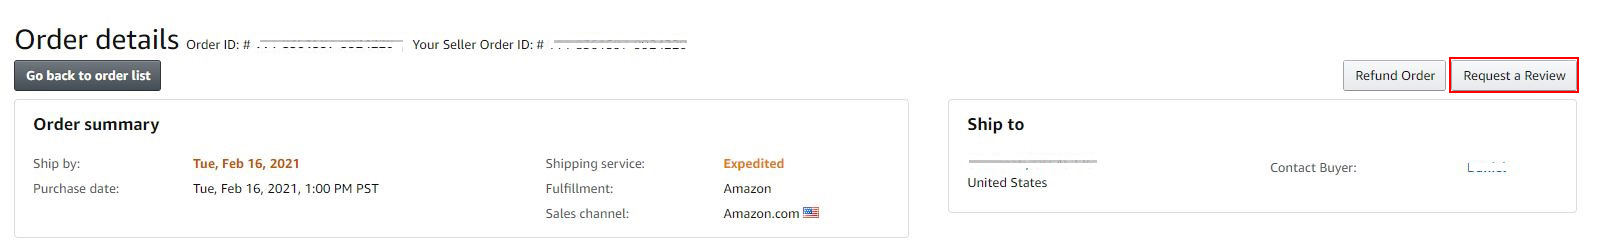 Request a Review Amazon SellerCentral